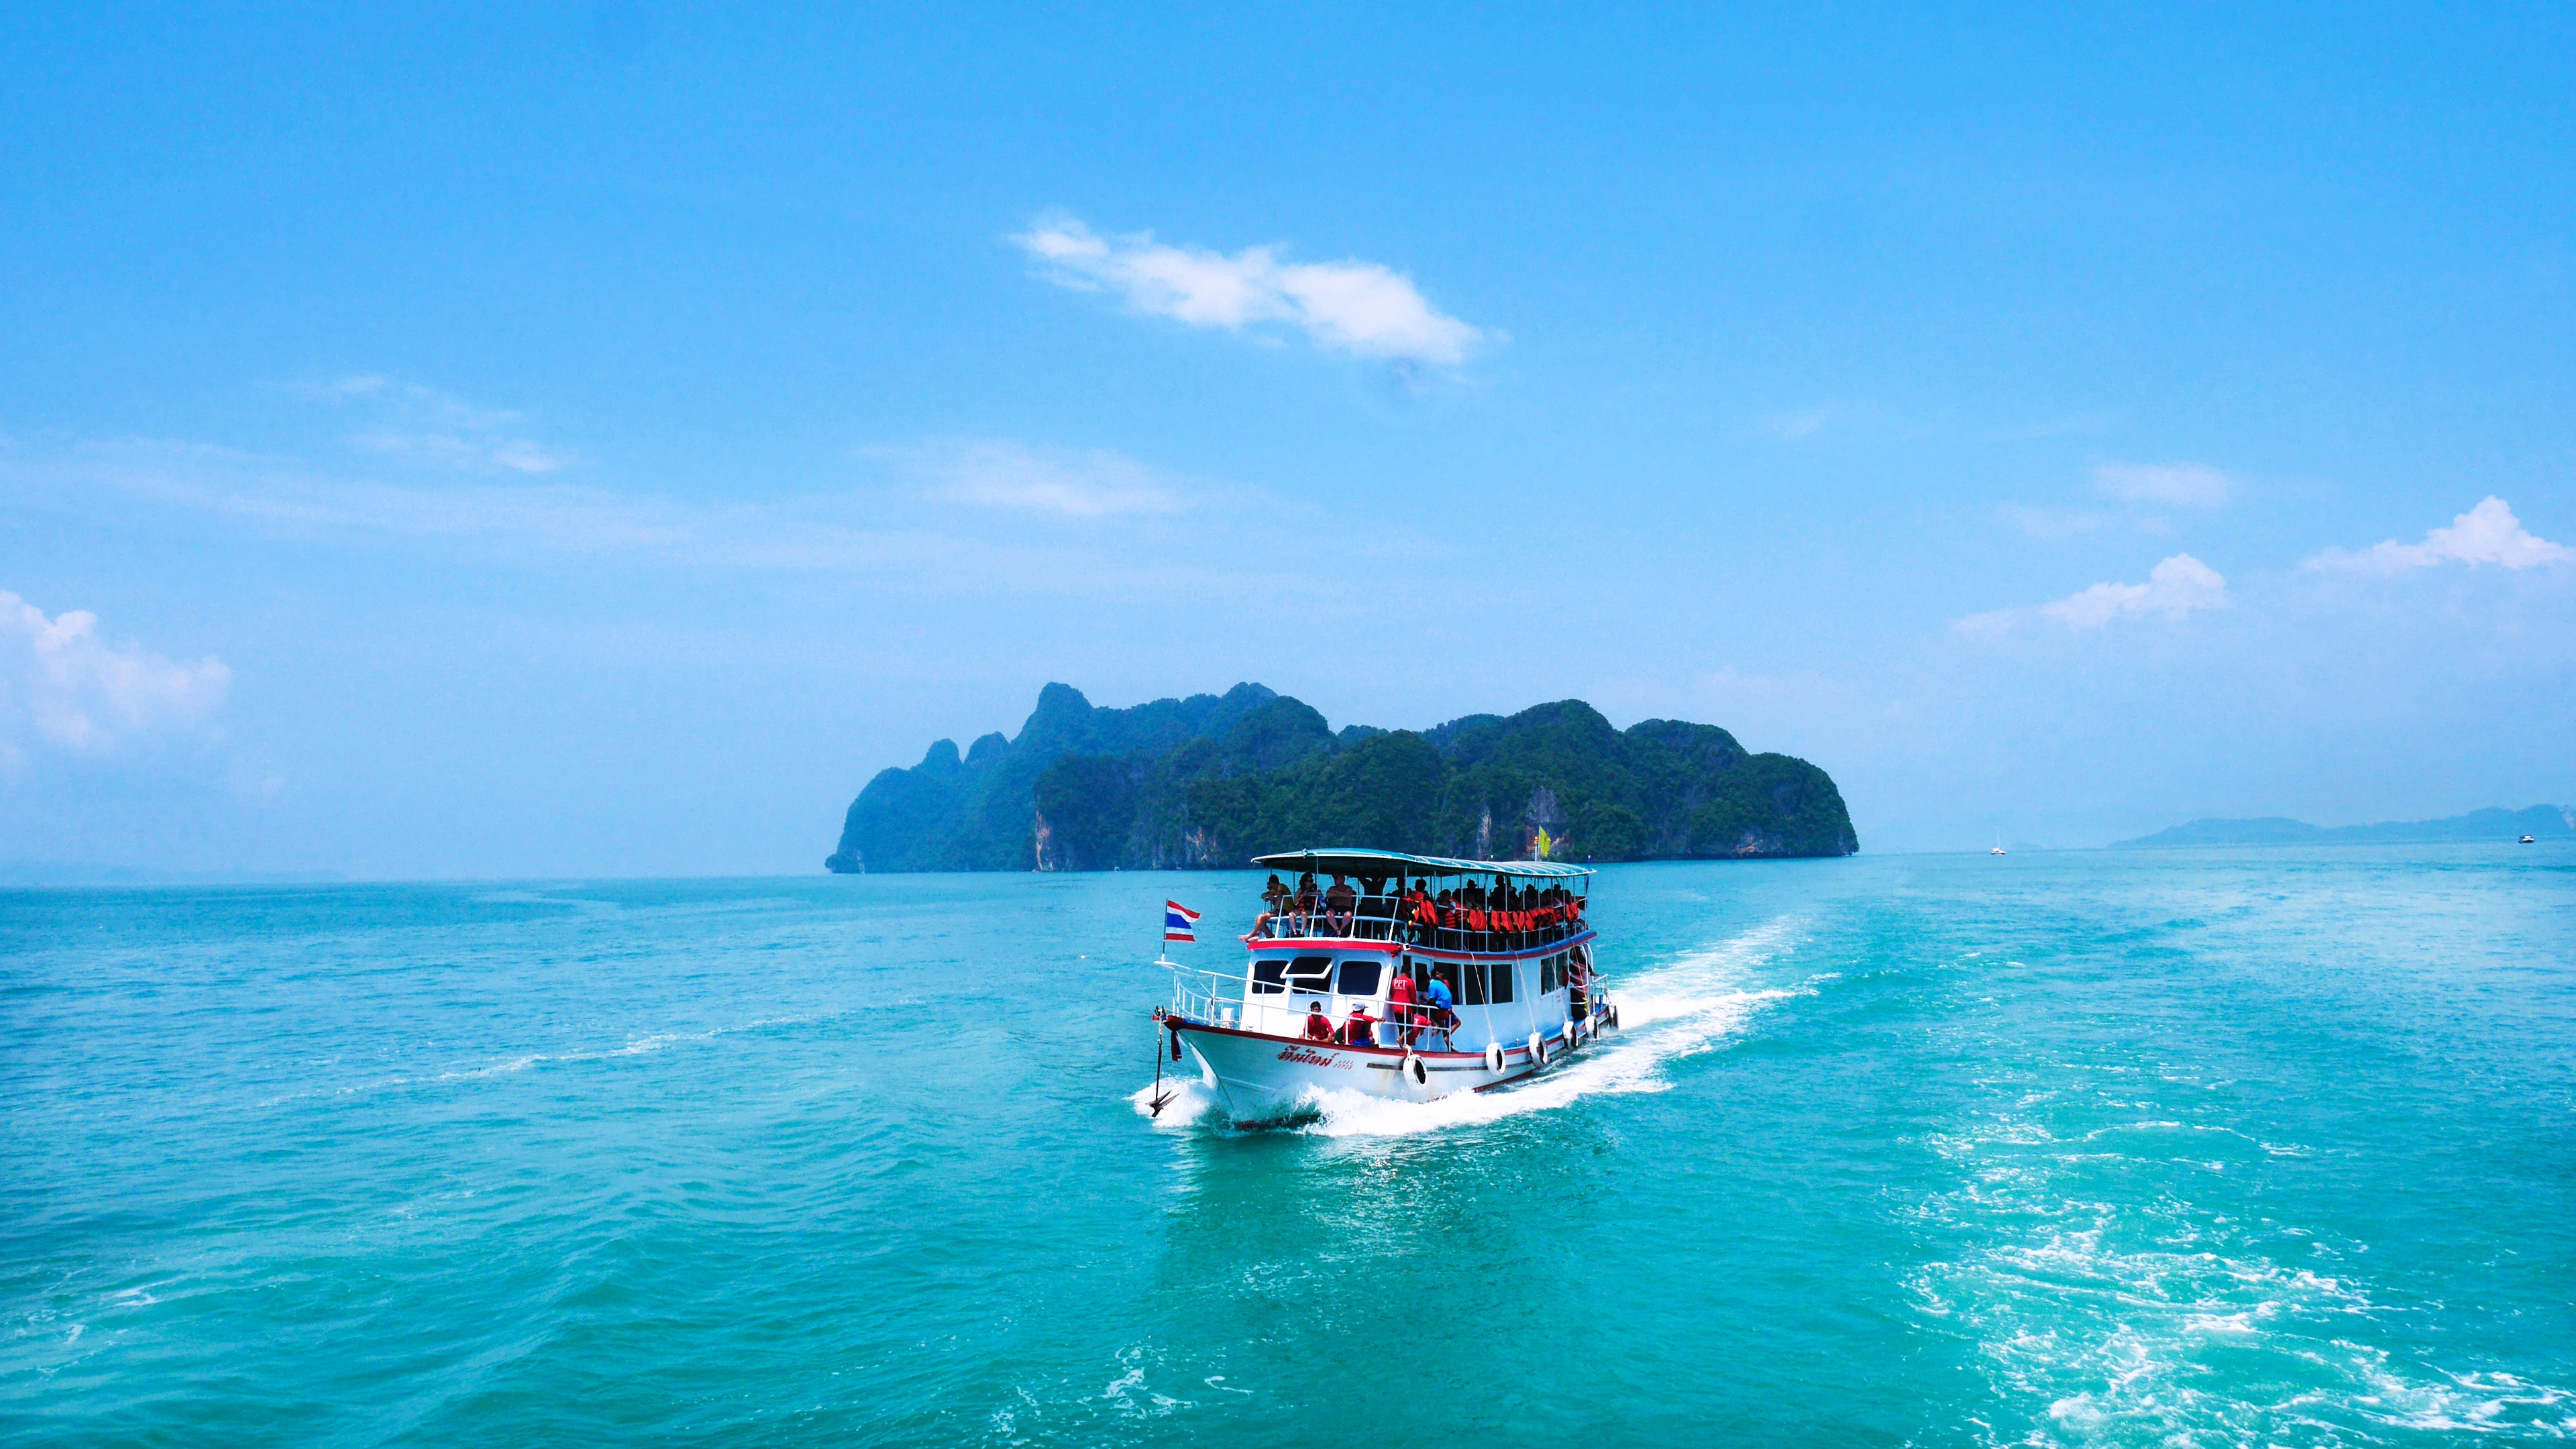 boat ride through the ocean and islands in Vietnam